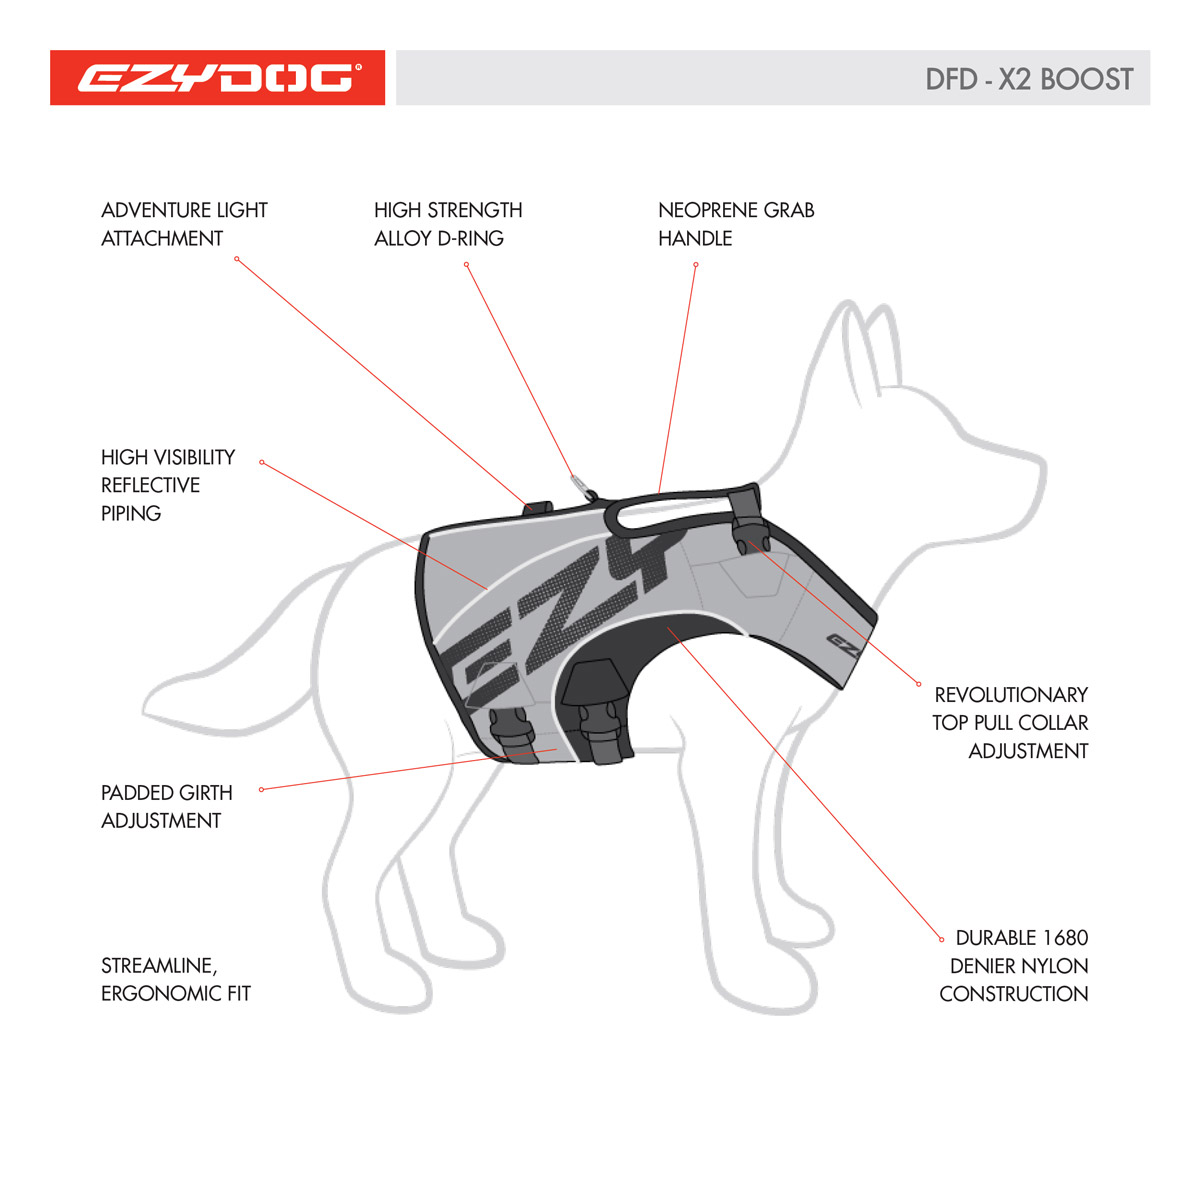 dfd-x2-boost-dog-diagram.jpg